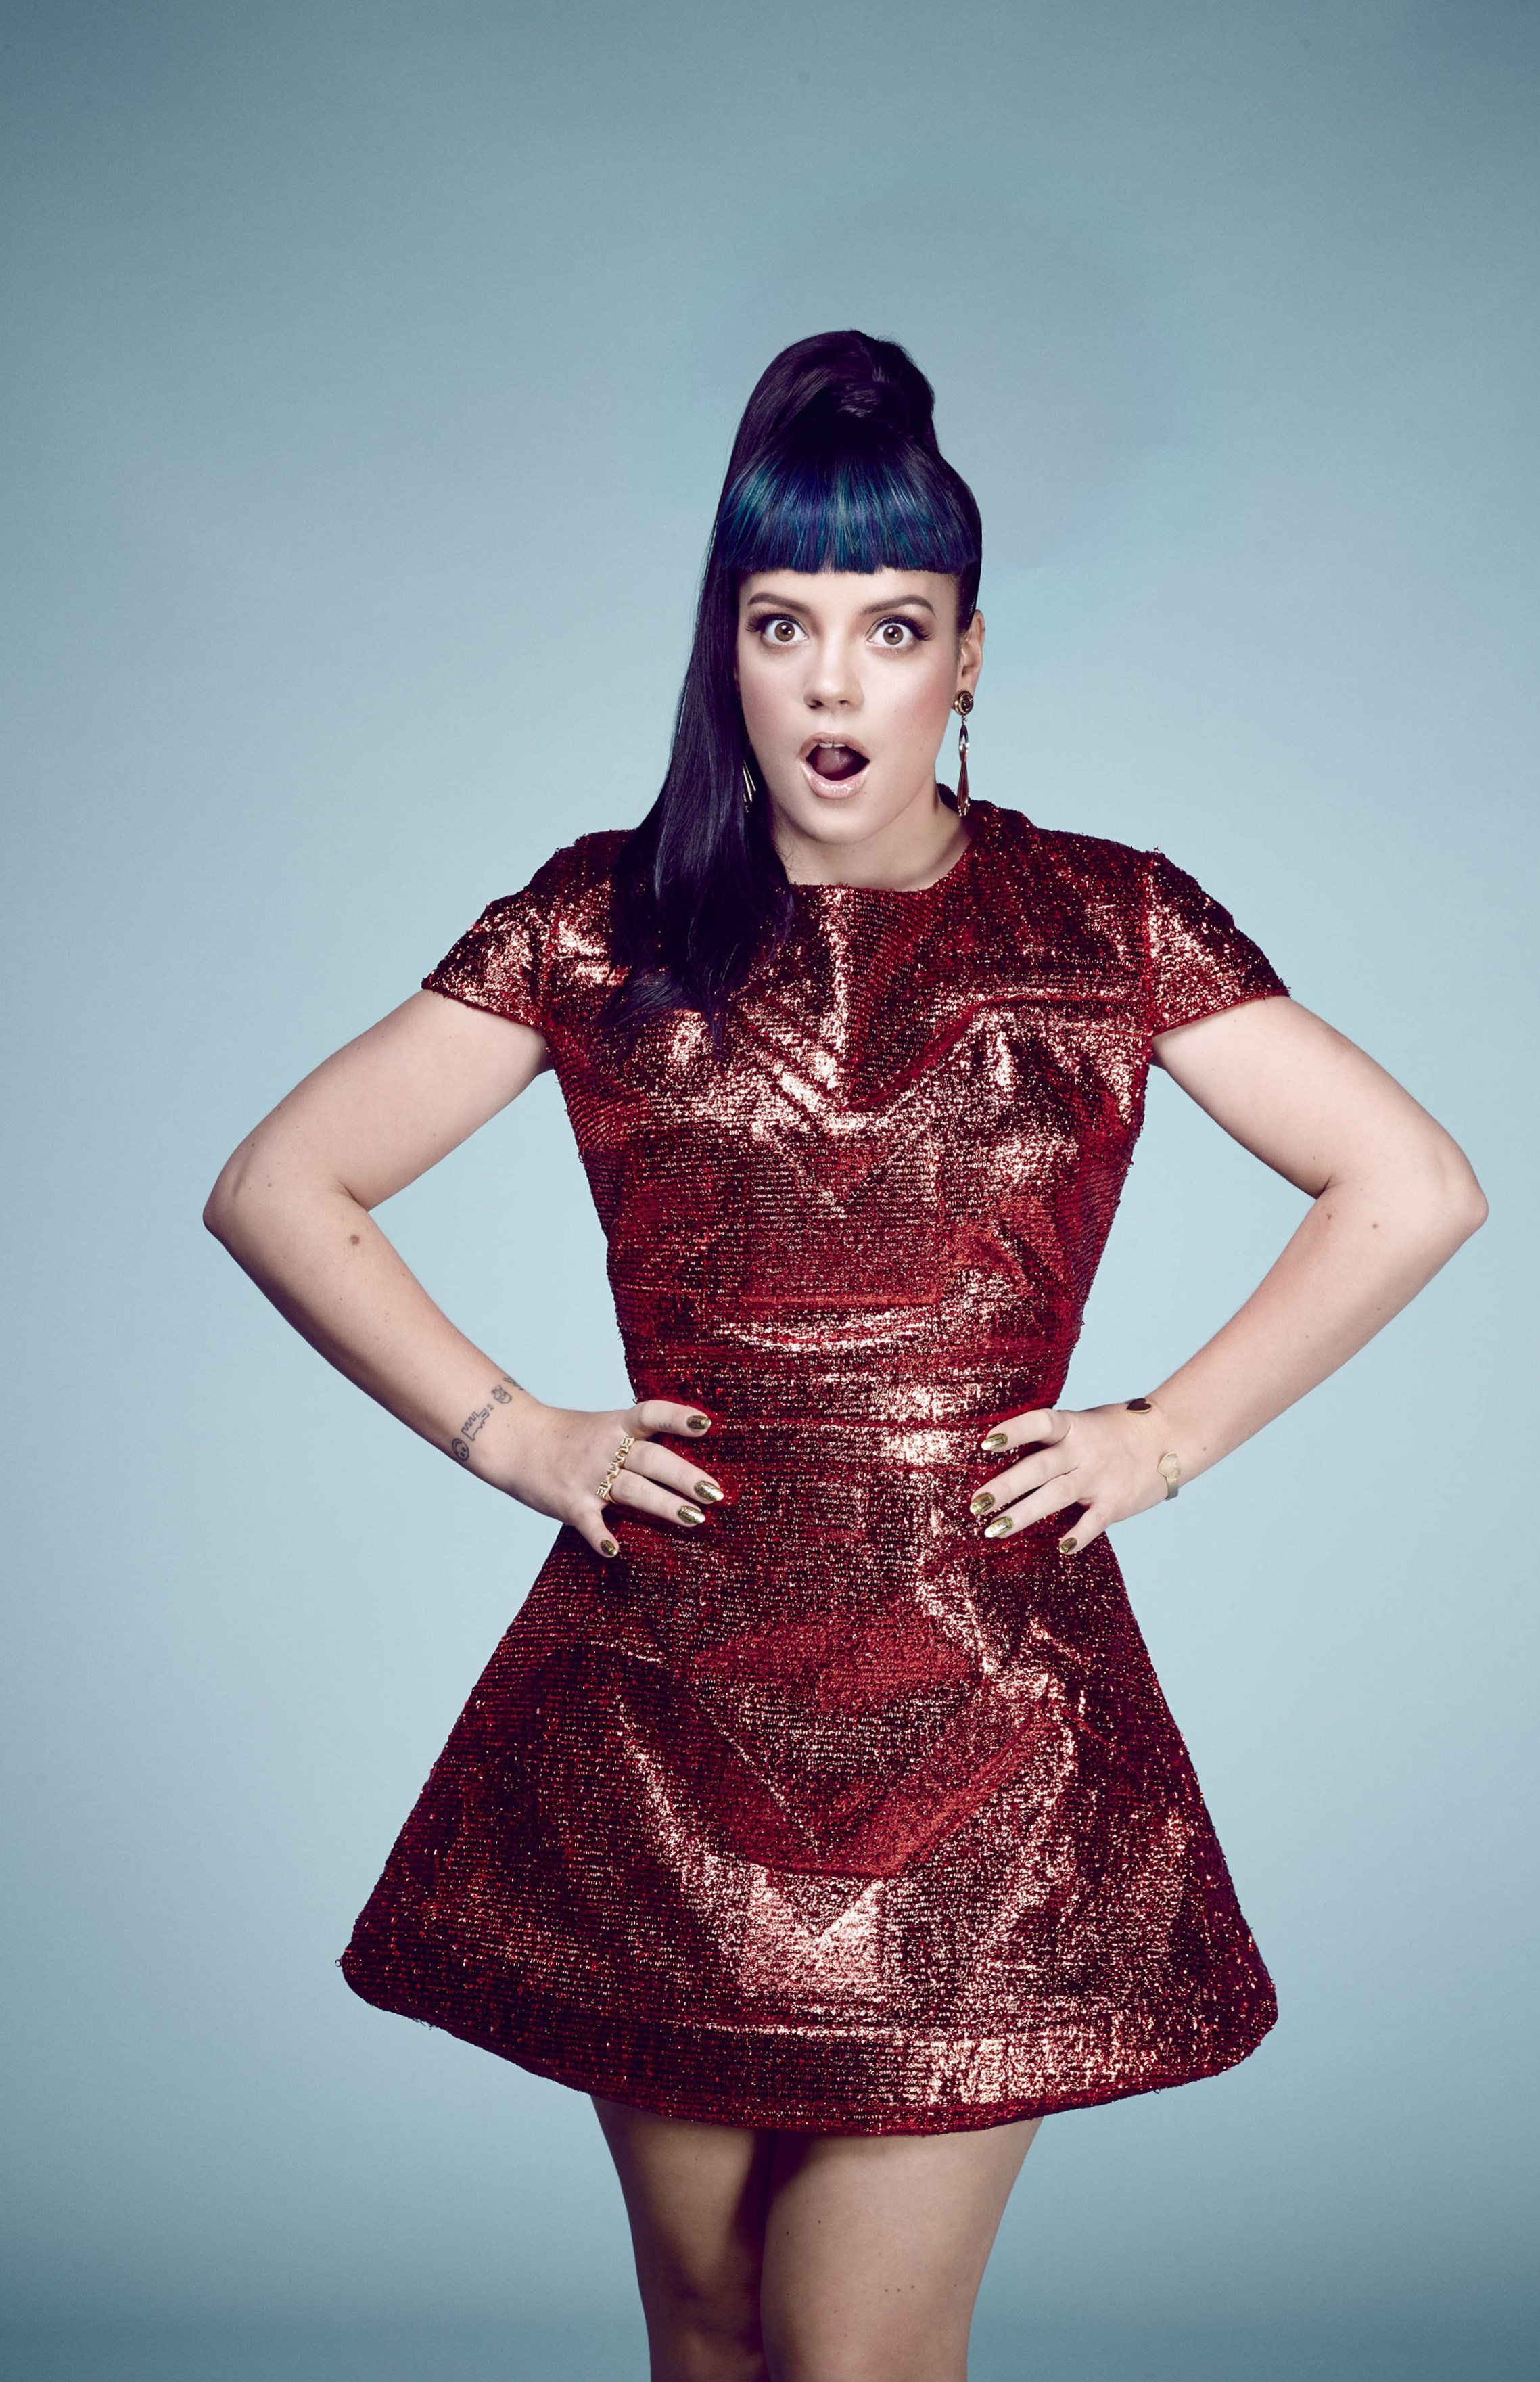 Lily Allen Weight Height And Age We Know It All